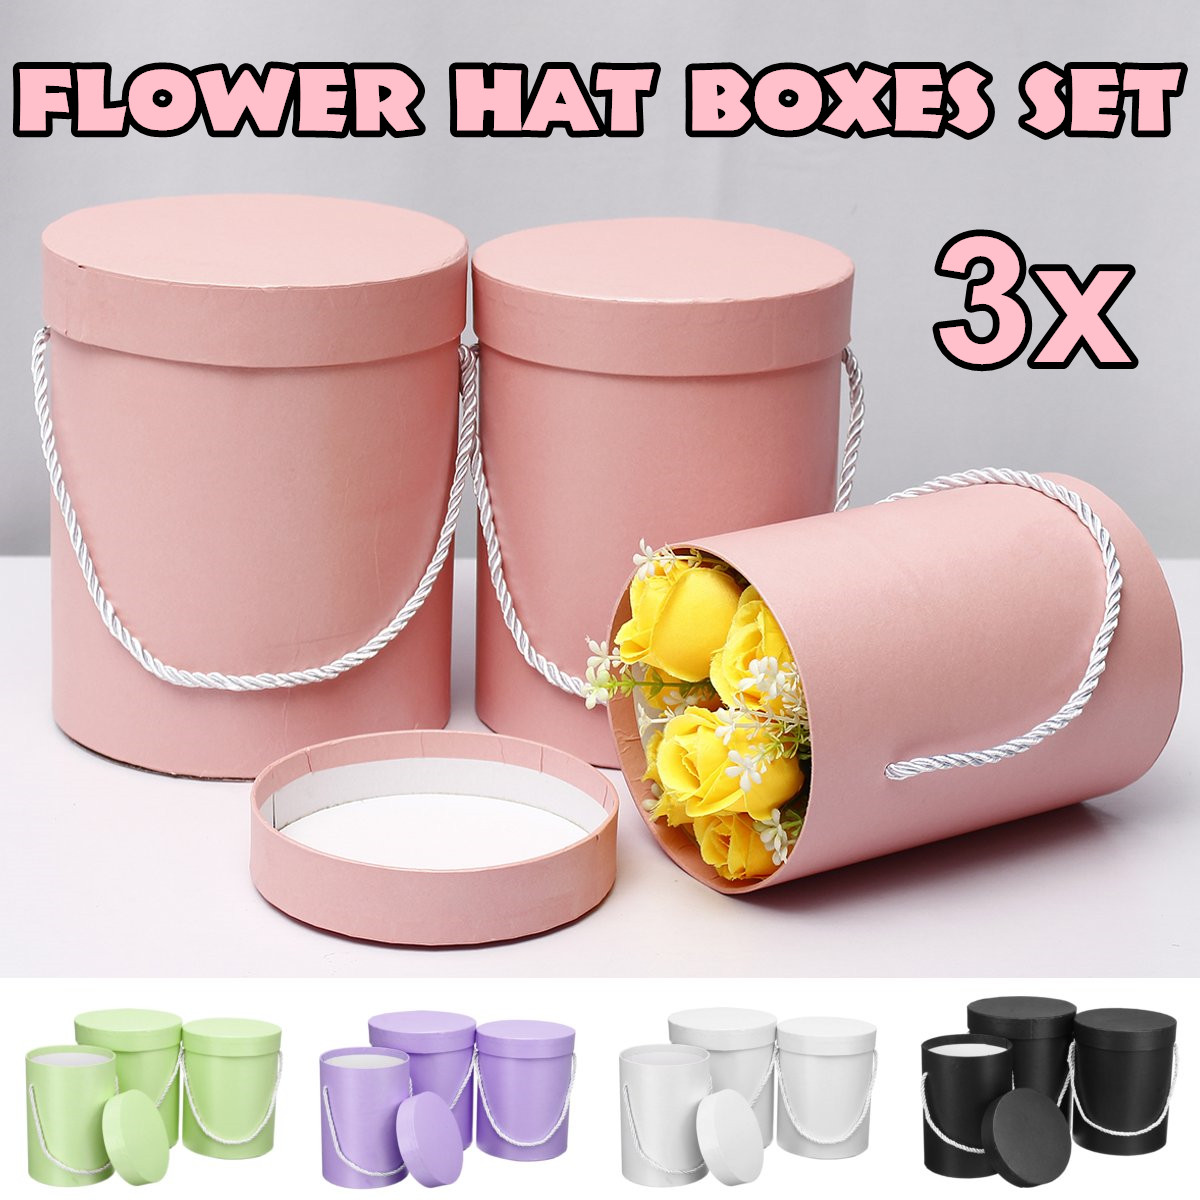 3 Pcs/Set Round Flower Paper Boxes With Lid Hug Bucket Florist Gift Packaging Box Home Wedding Decorations Flower Bouquet Holder